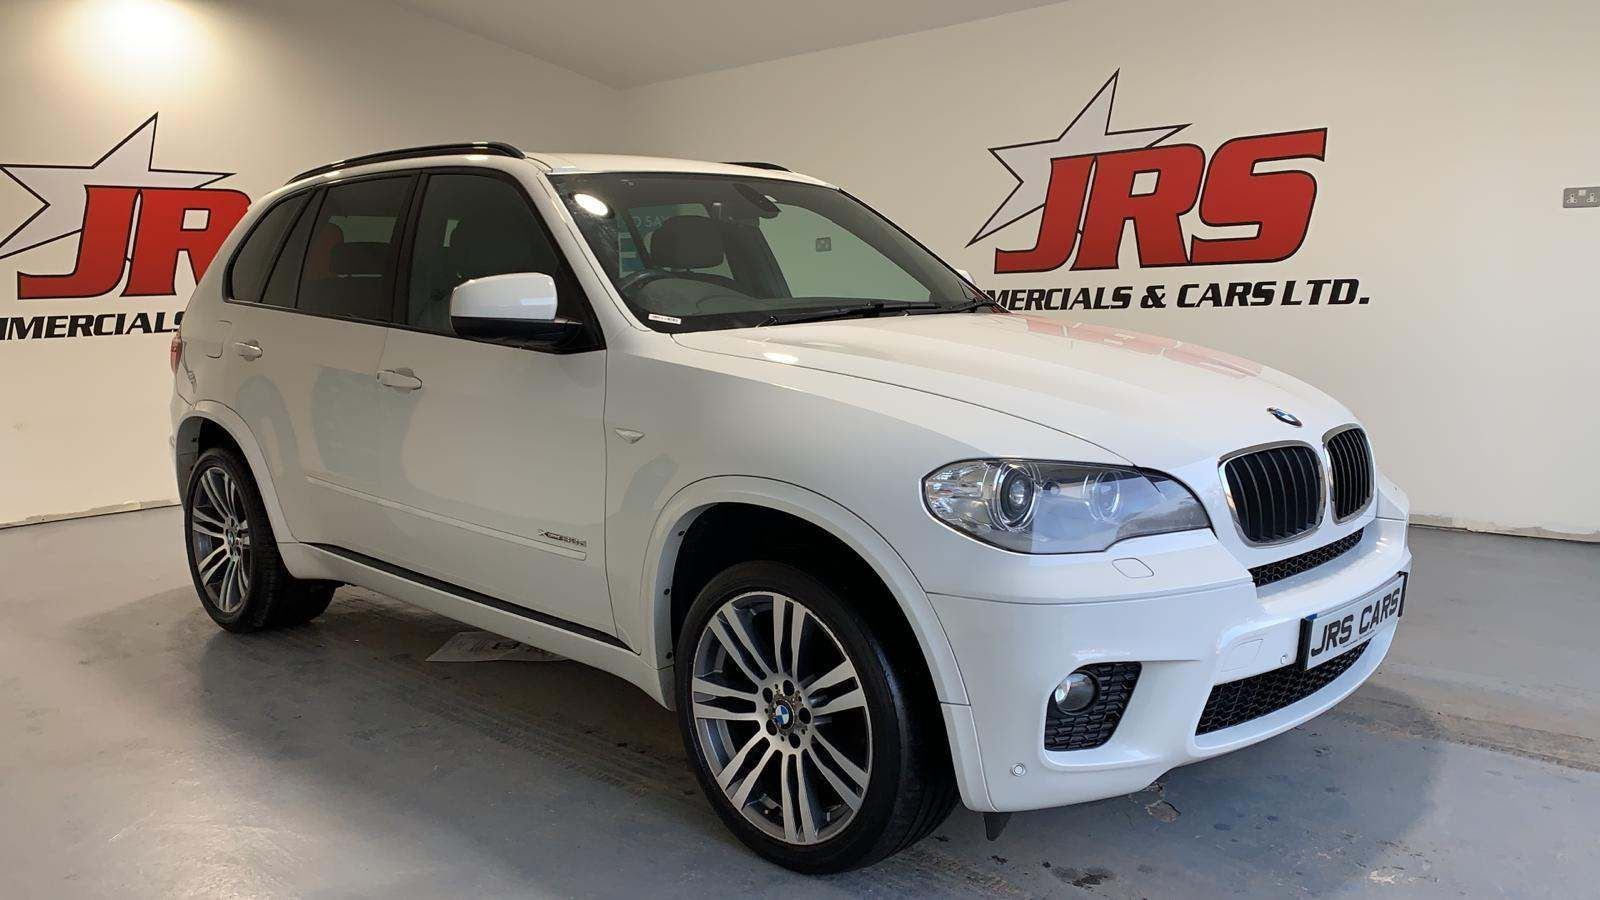 2013 BMW X5 3.0 30d M Sport xDrive (s/s) Diesel Automatic **Reverse Camera** – J R S Commercials And Cars Dungannon